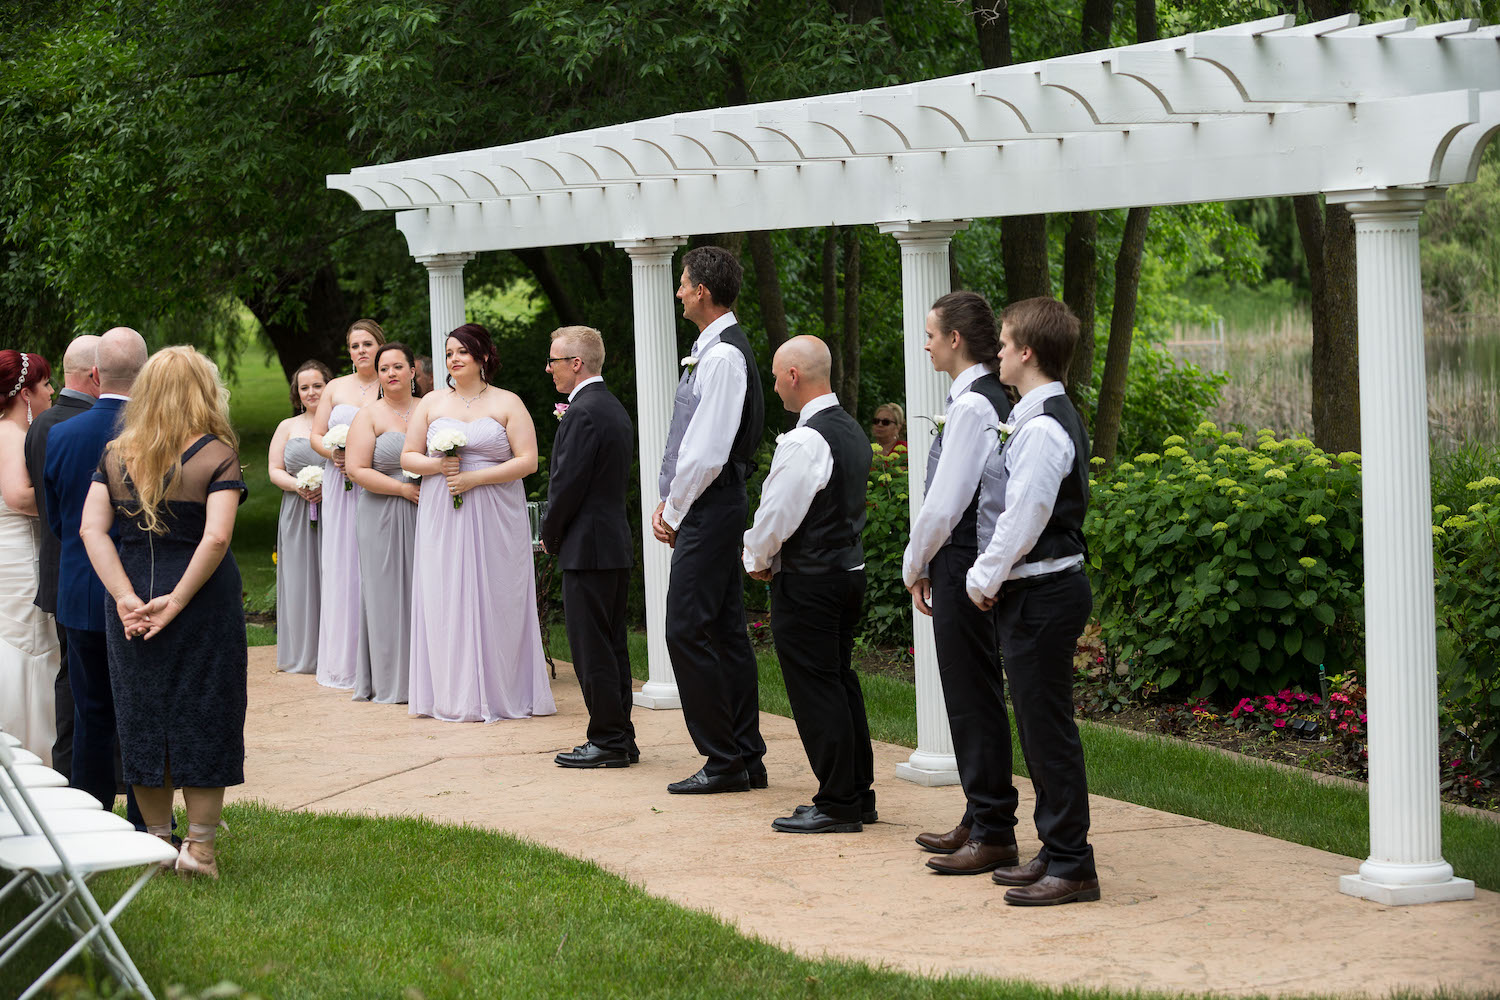 Cindyrella's Garden outdoor ceremony by the lake with a redhead bride, built in arbor